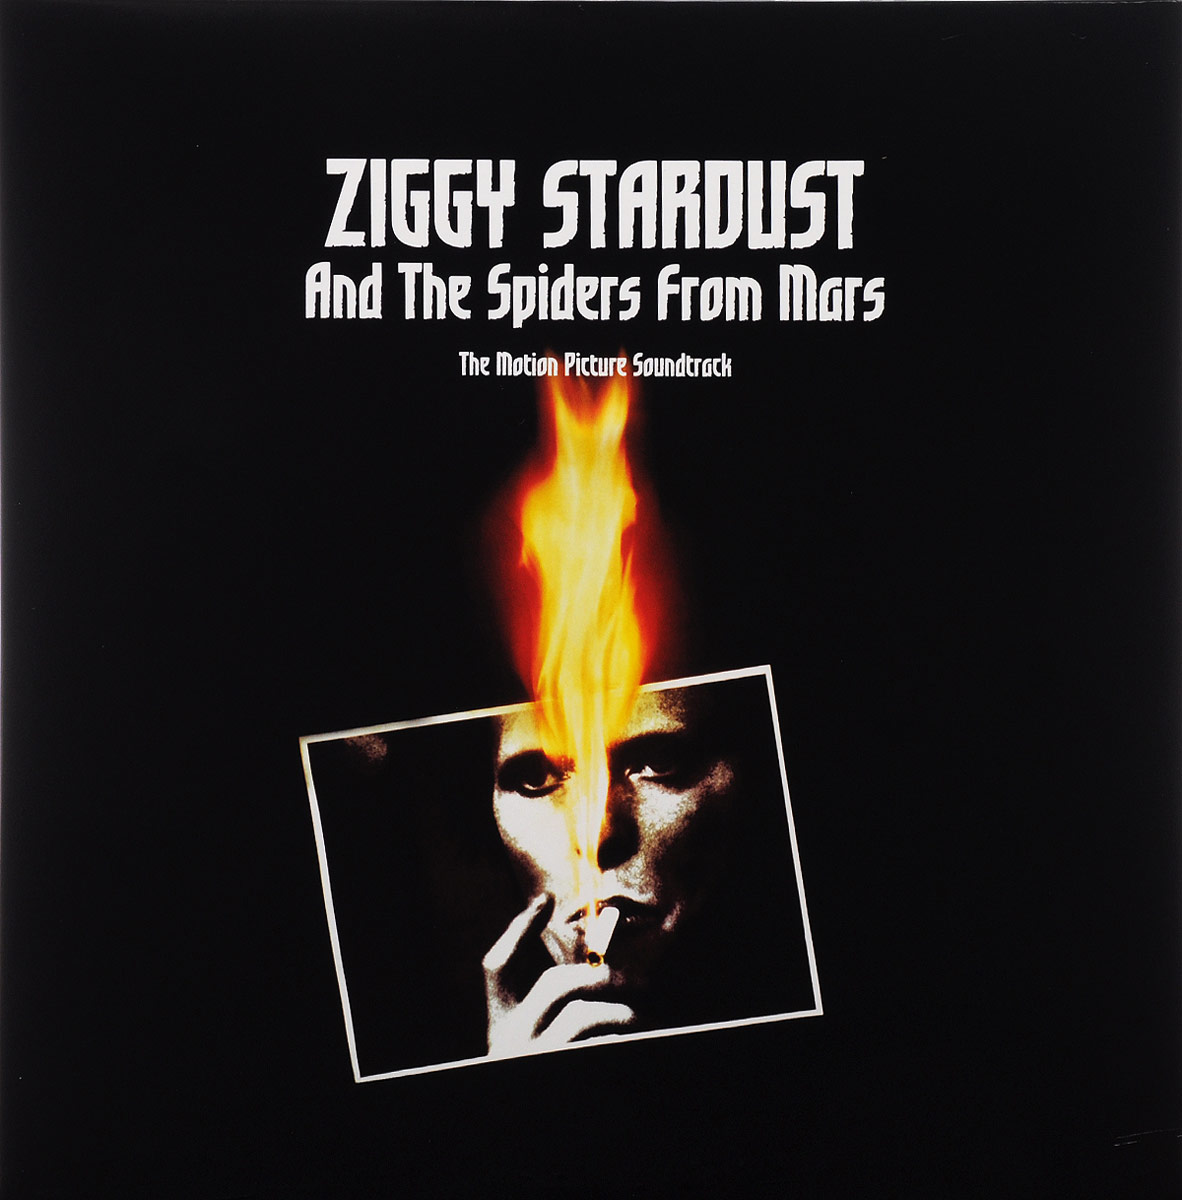 Дэвид Боуи Ziggy Stardust And The Spiders From Mars The Motion Picture Soundtrack (2 LP) виниловая пластинка cd david bowie ziggy stardust and the spiders from